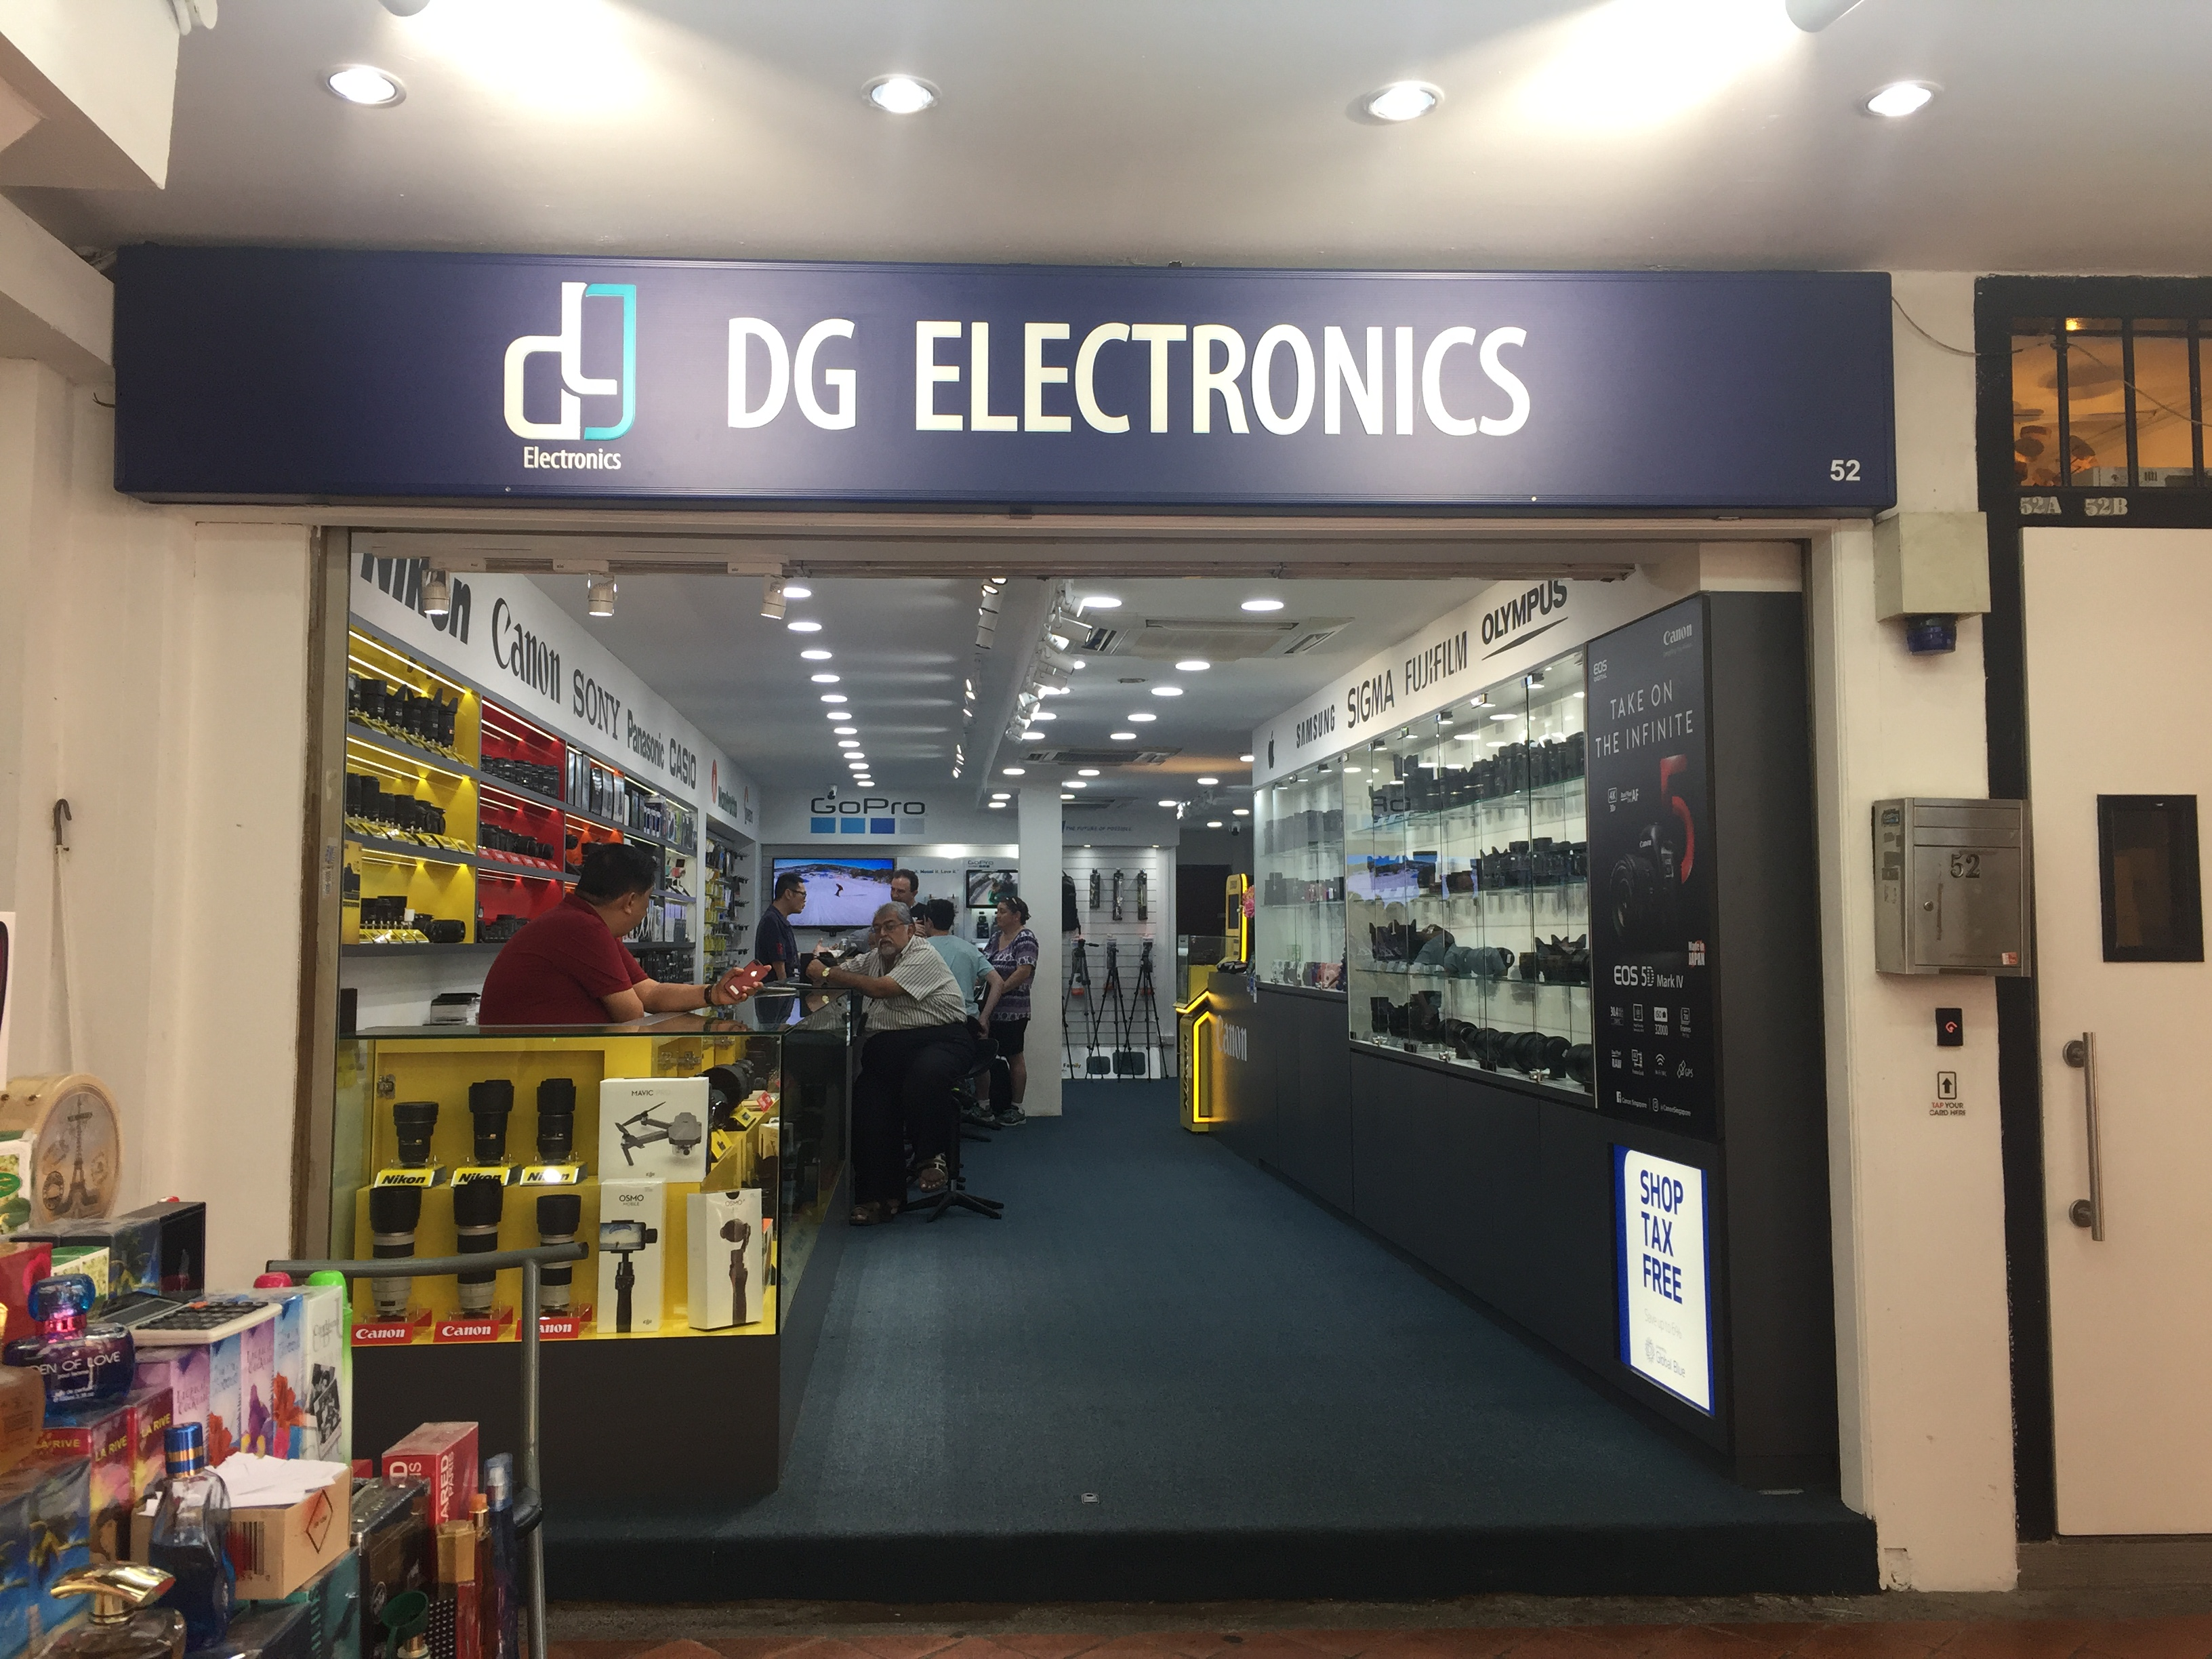 DG Electronics (China Town)